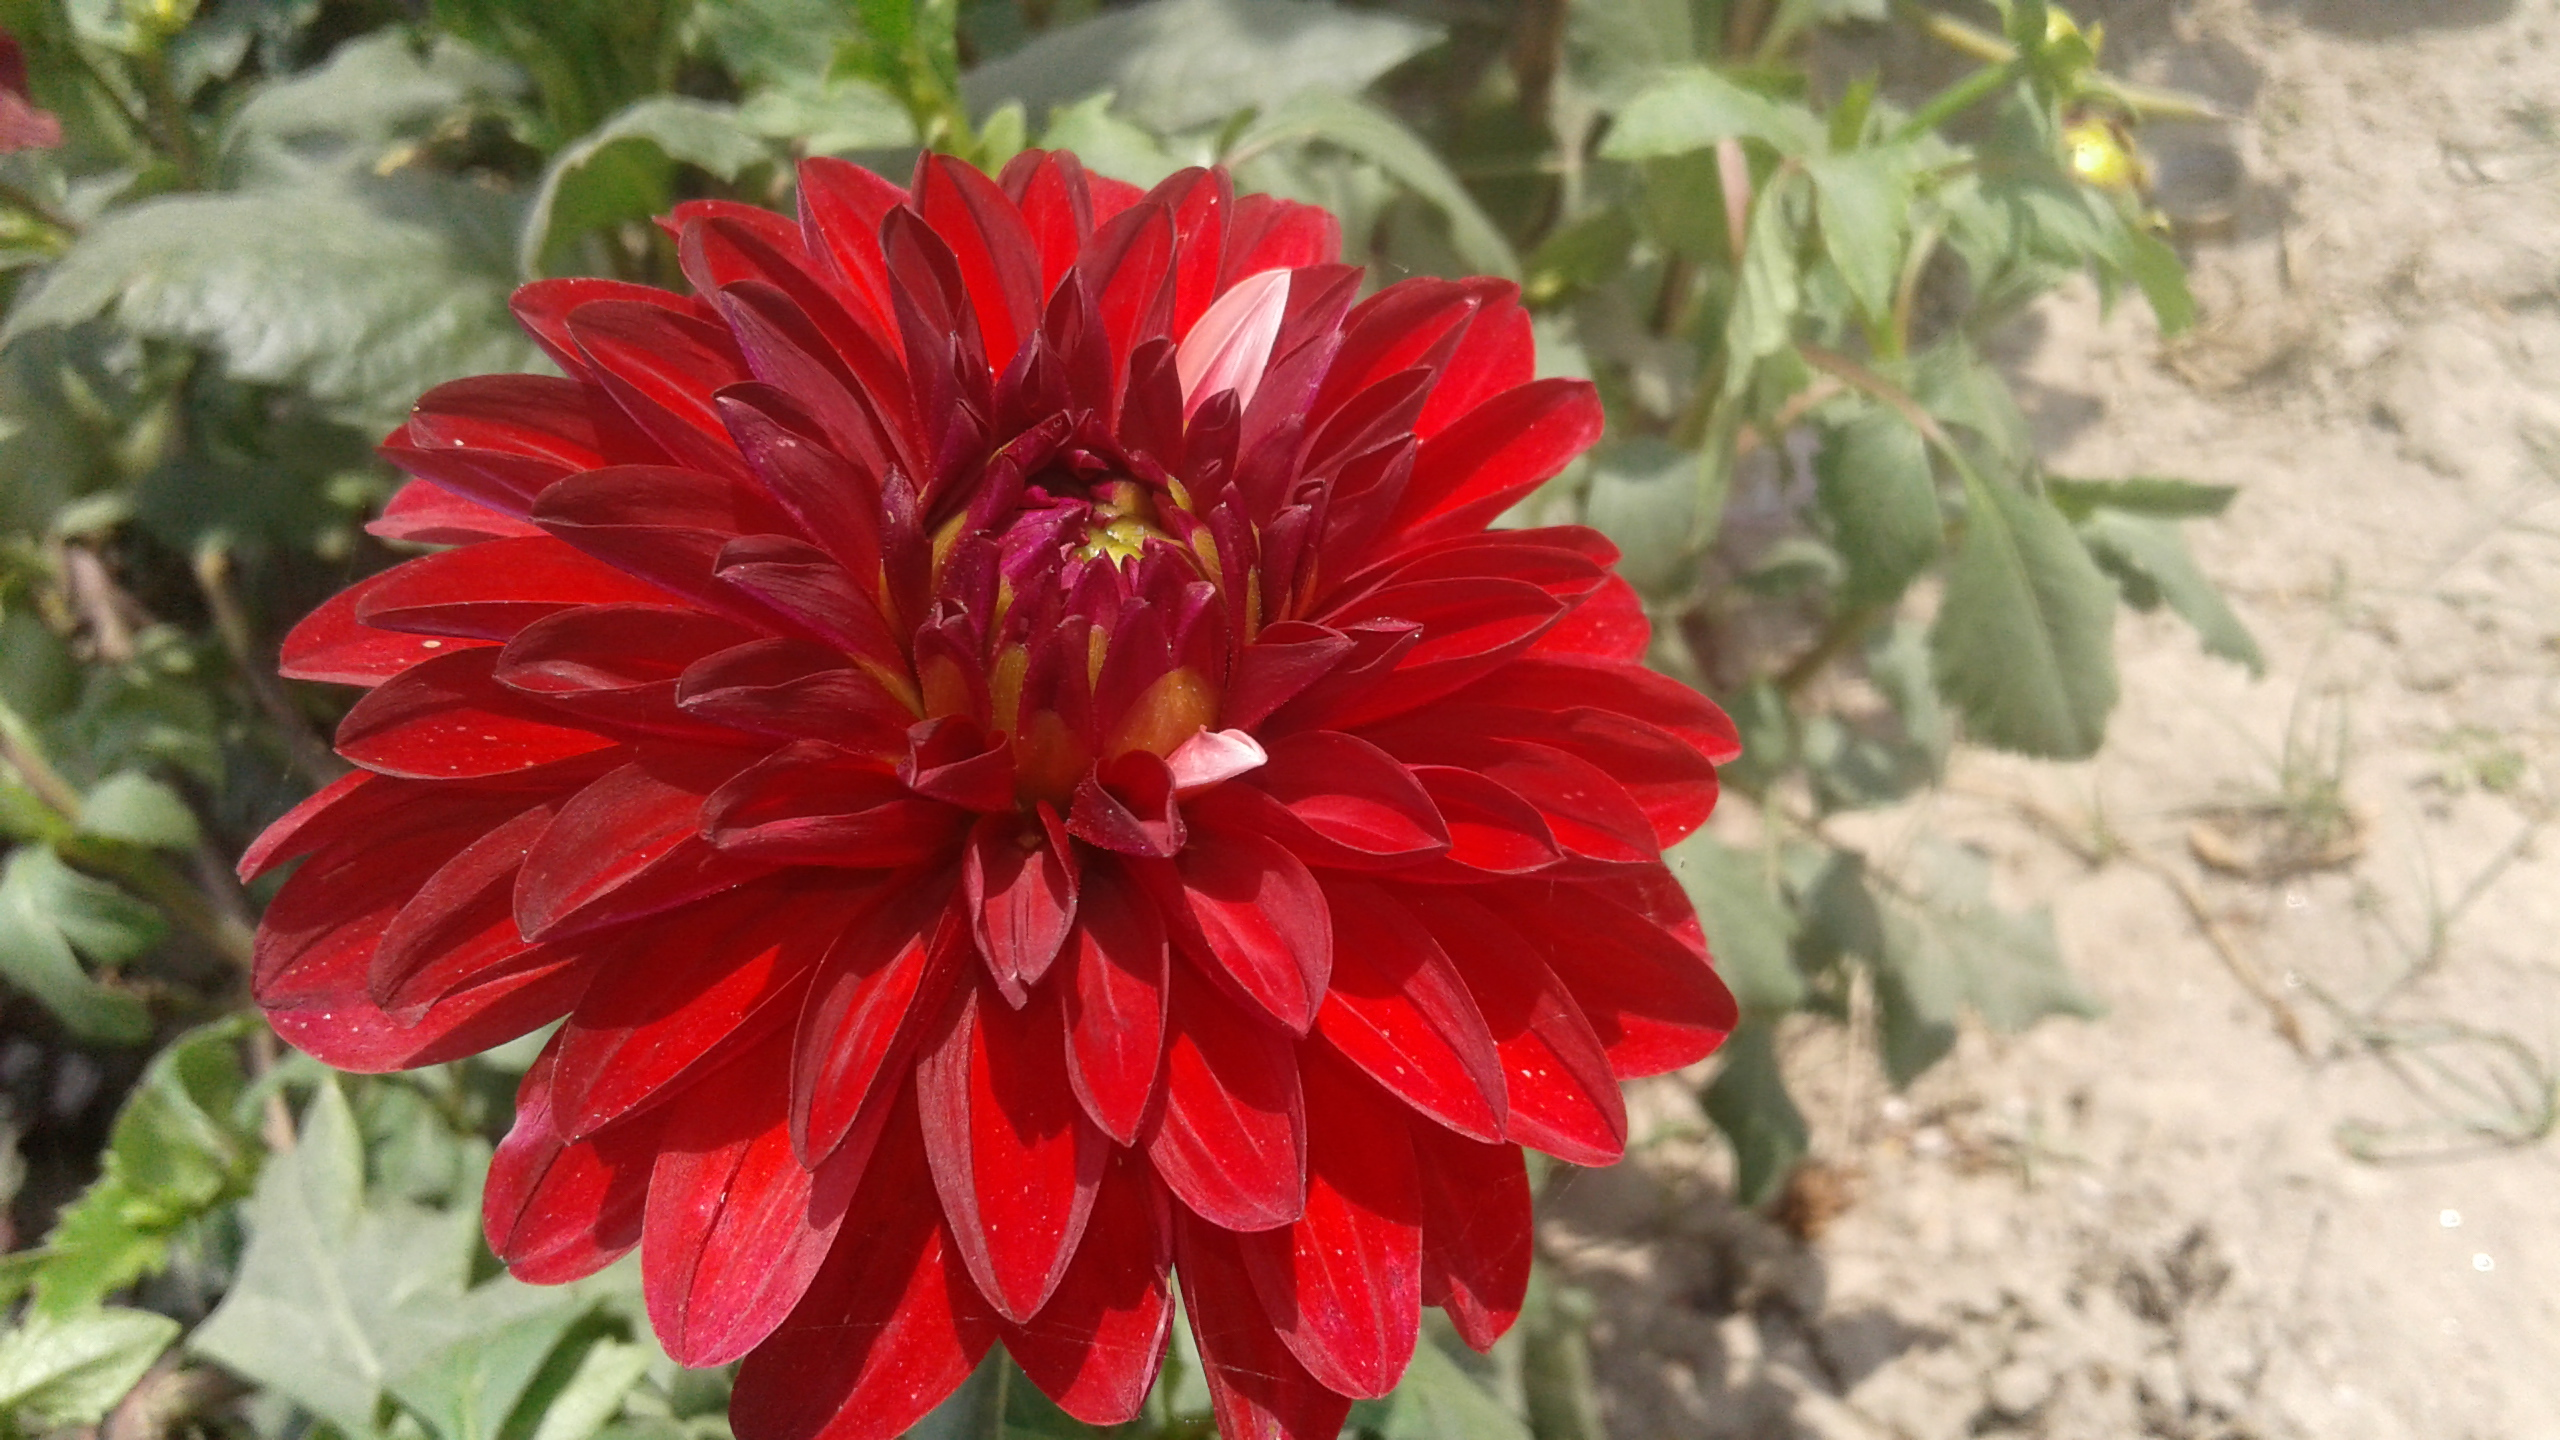 Many-petaled red flower in India.jpg